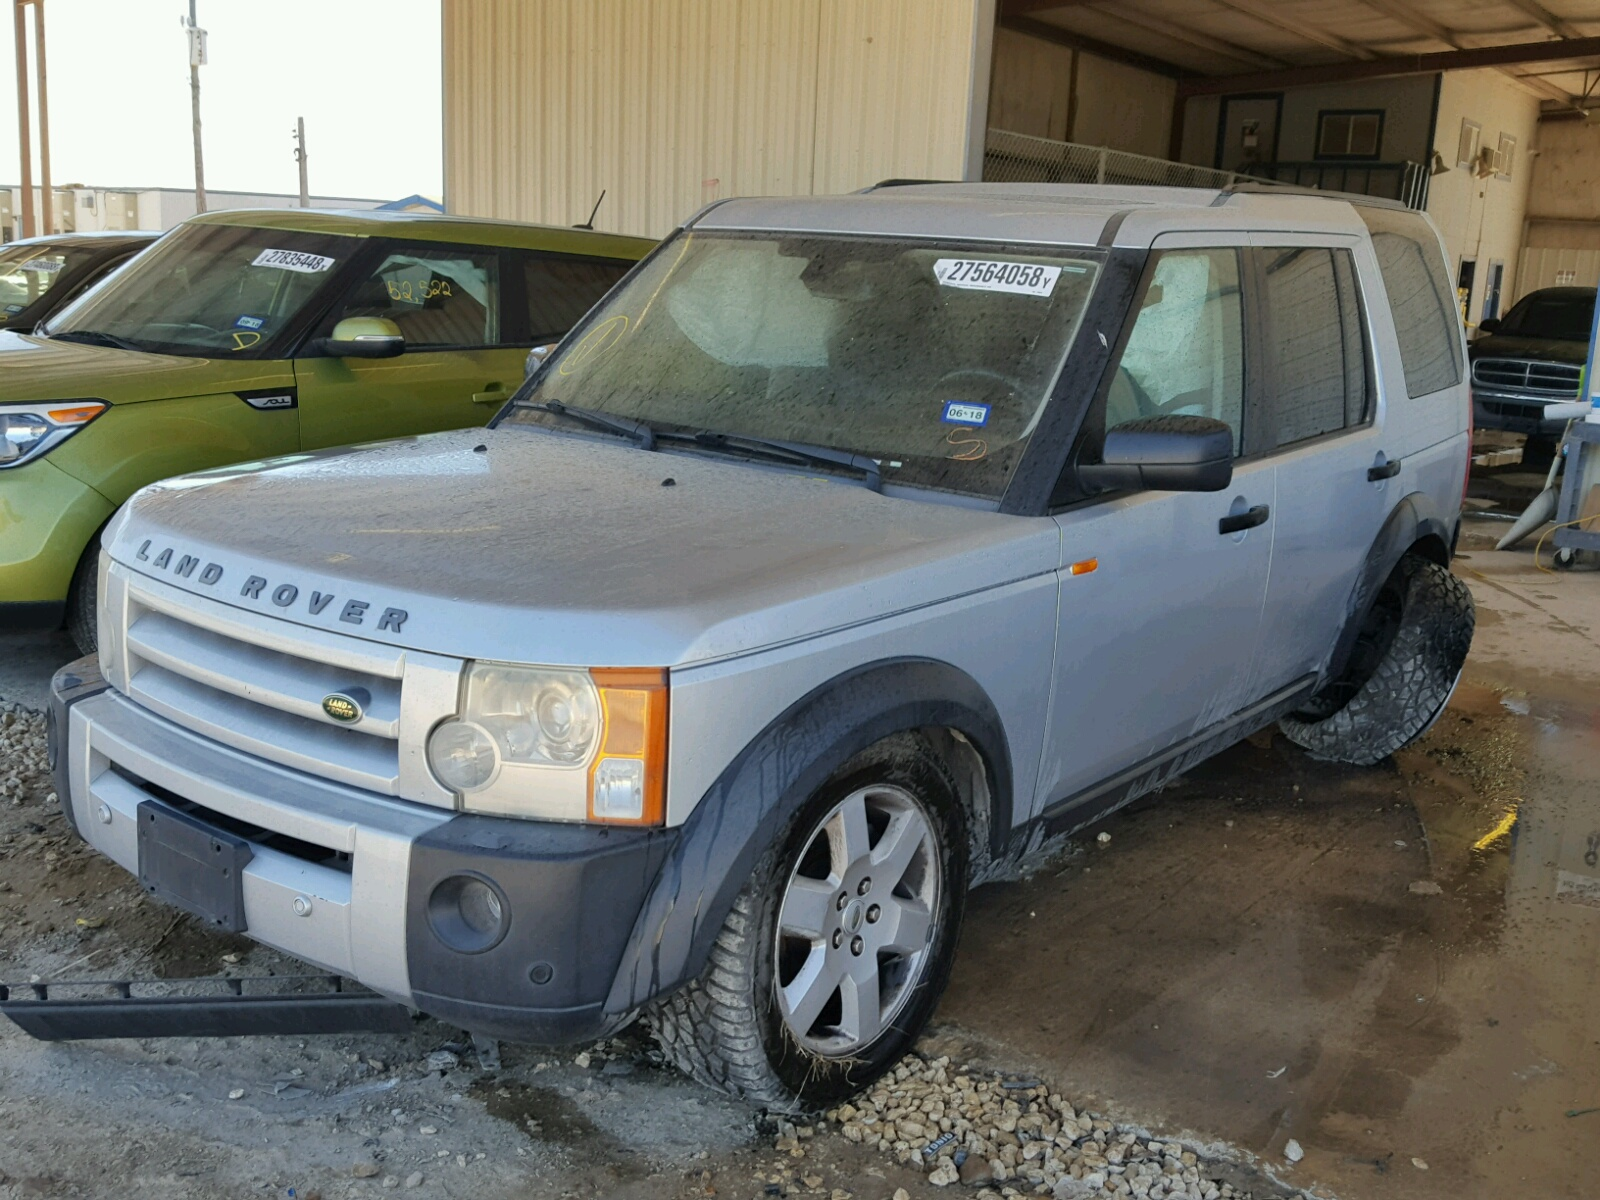 view en tx copart landrover salvage auctions title hse online carfinder land silver lot sale san auto antonio left in vehicle rover for on